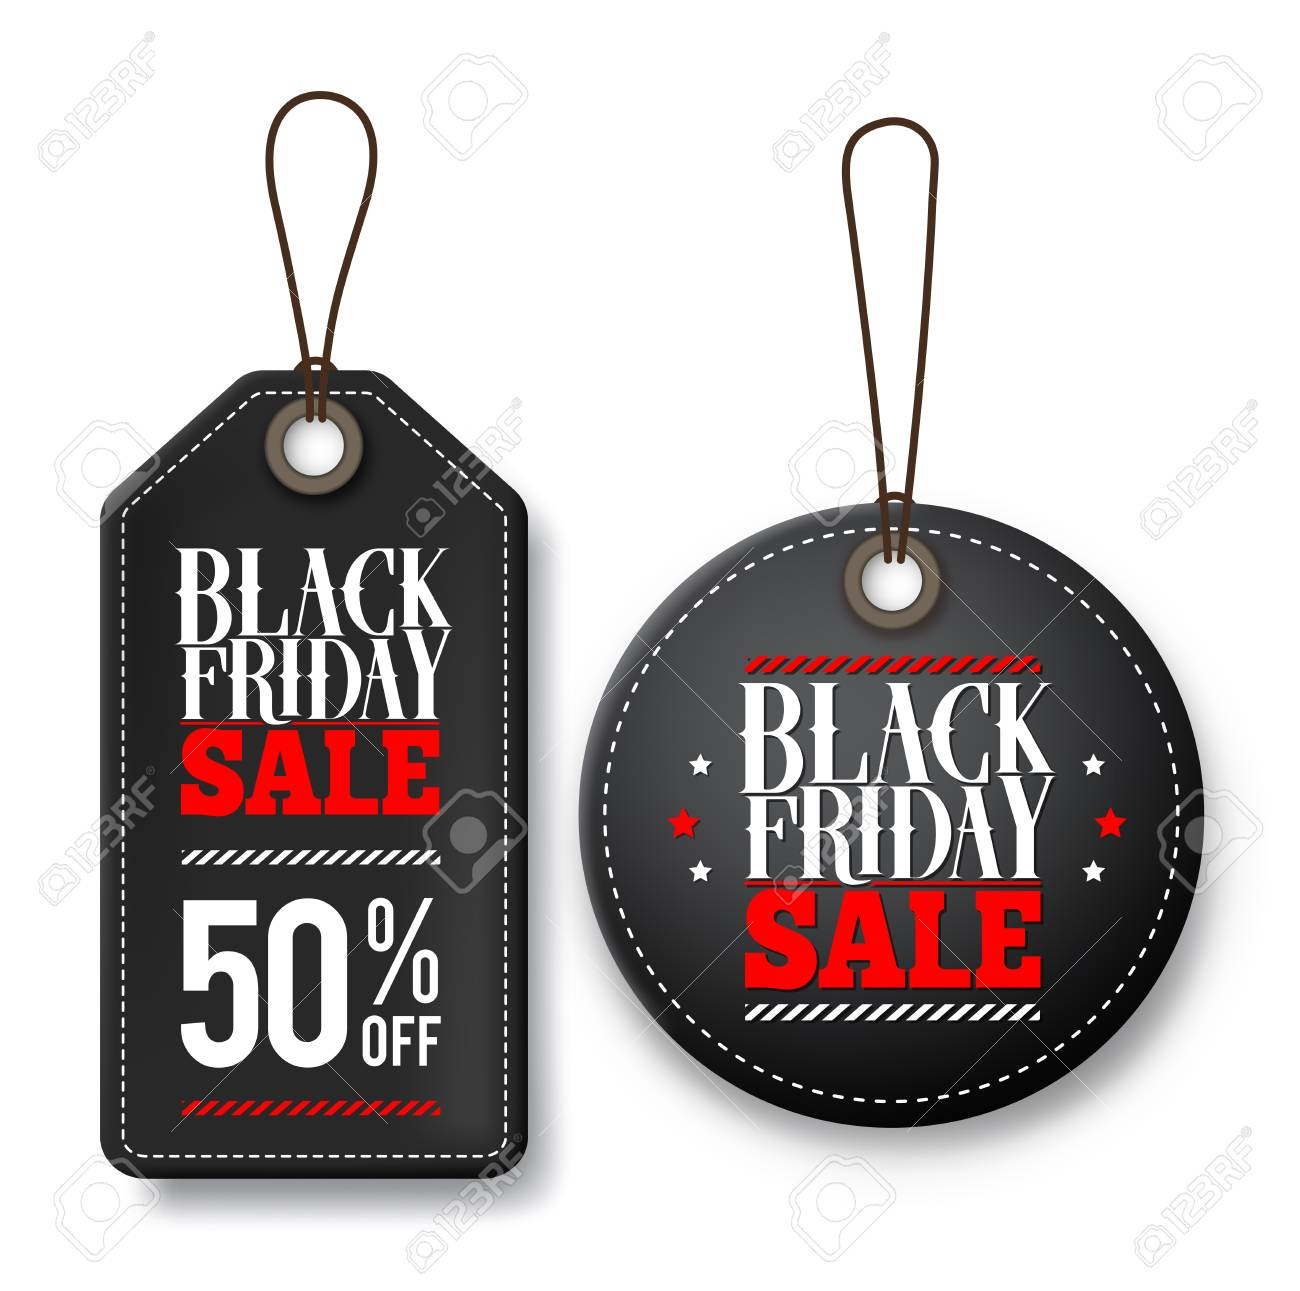 black friday sale vector price tags for discount promotions with